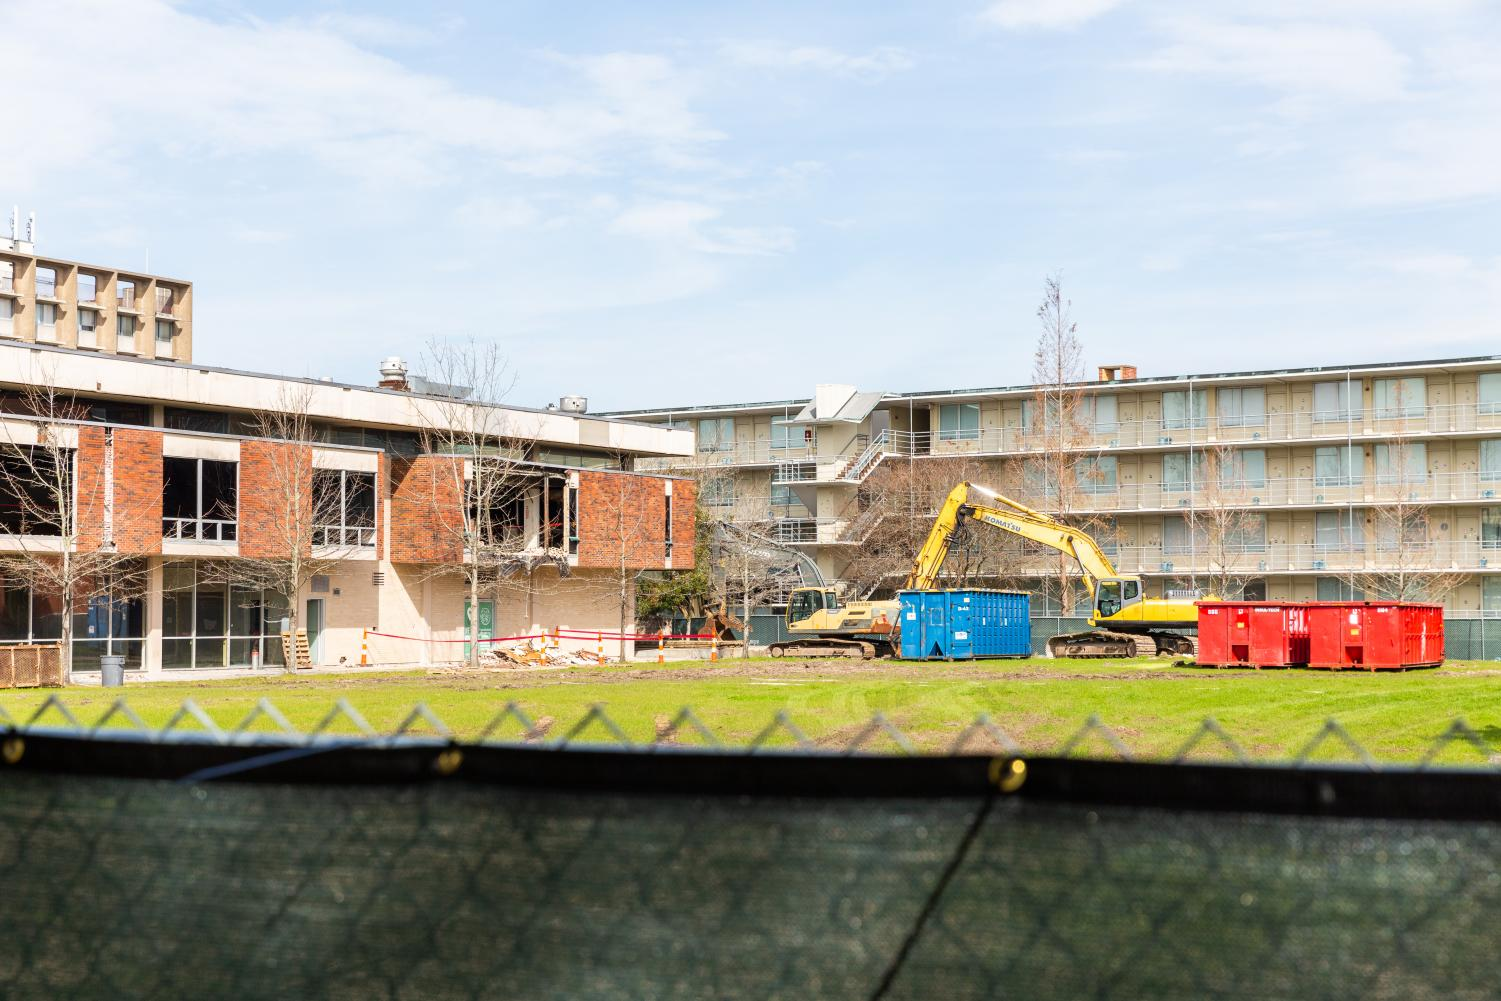 Bruff Commons is undergoing demolition, which has been a source of disturbance to many residents in Irby and Phelps.